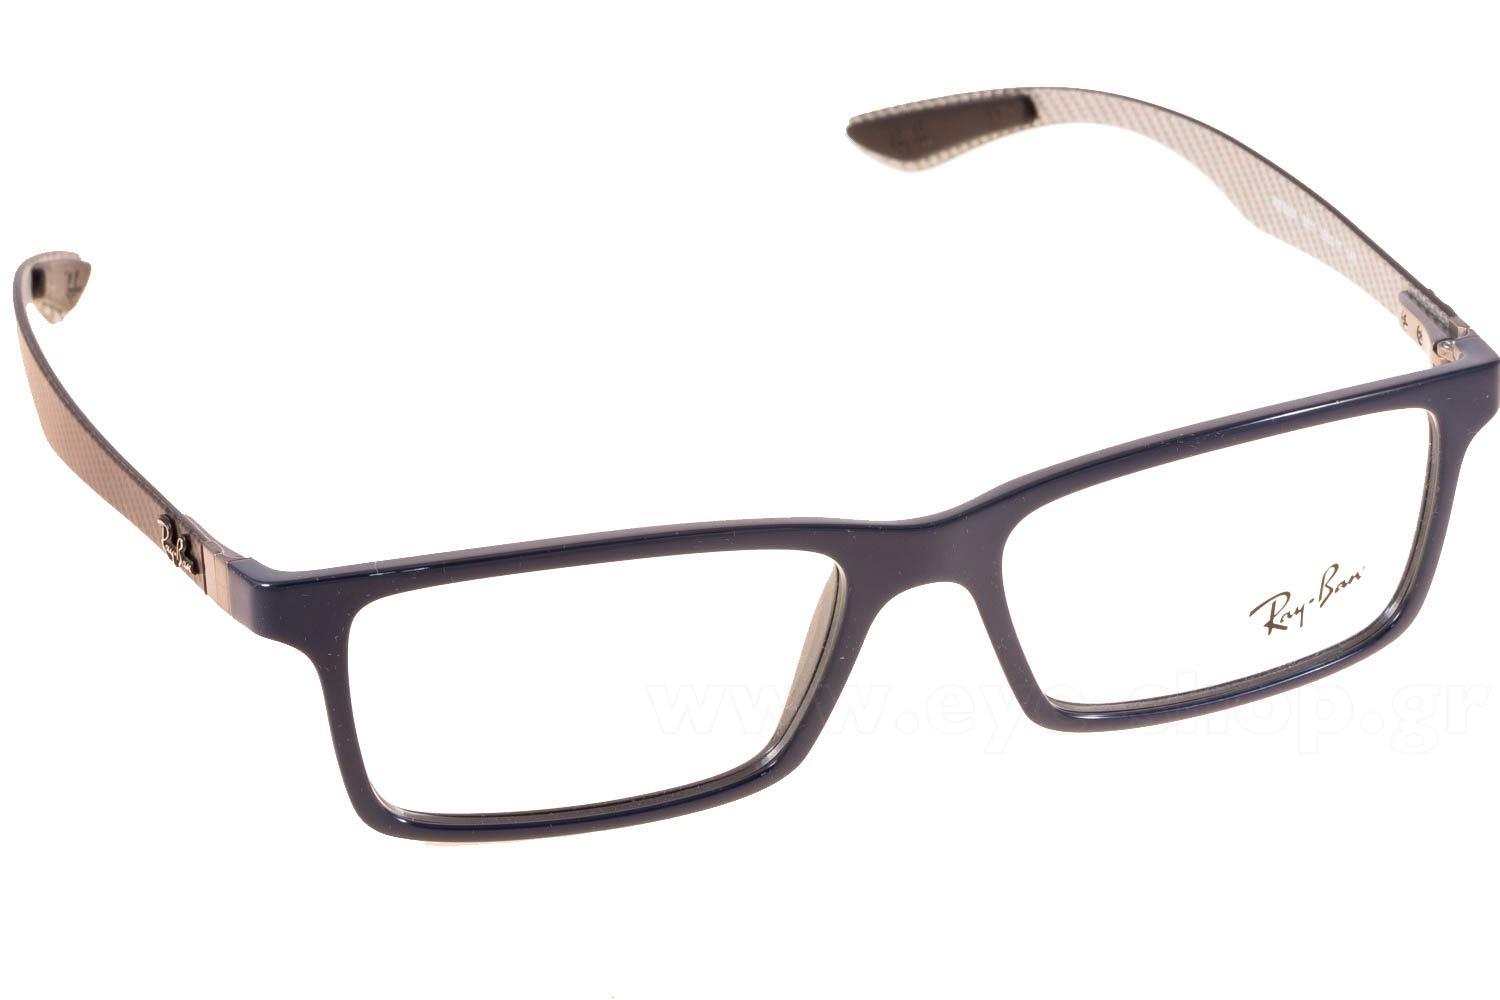 9f429f51d13 ... denmark enlarge colors outofstock glasses rayban 8901 5611 acf4b 13d9a